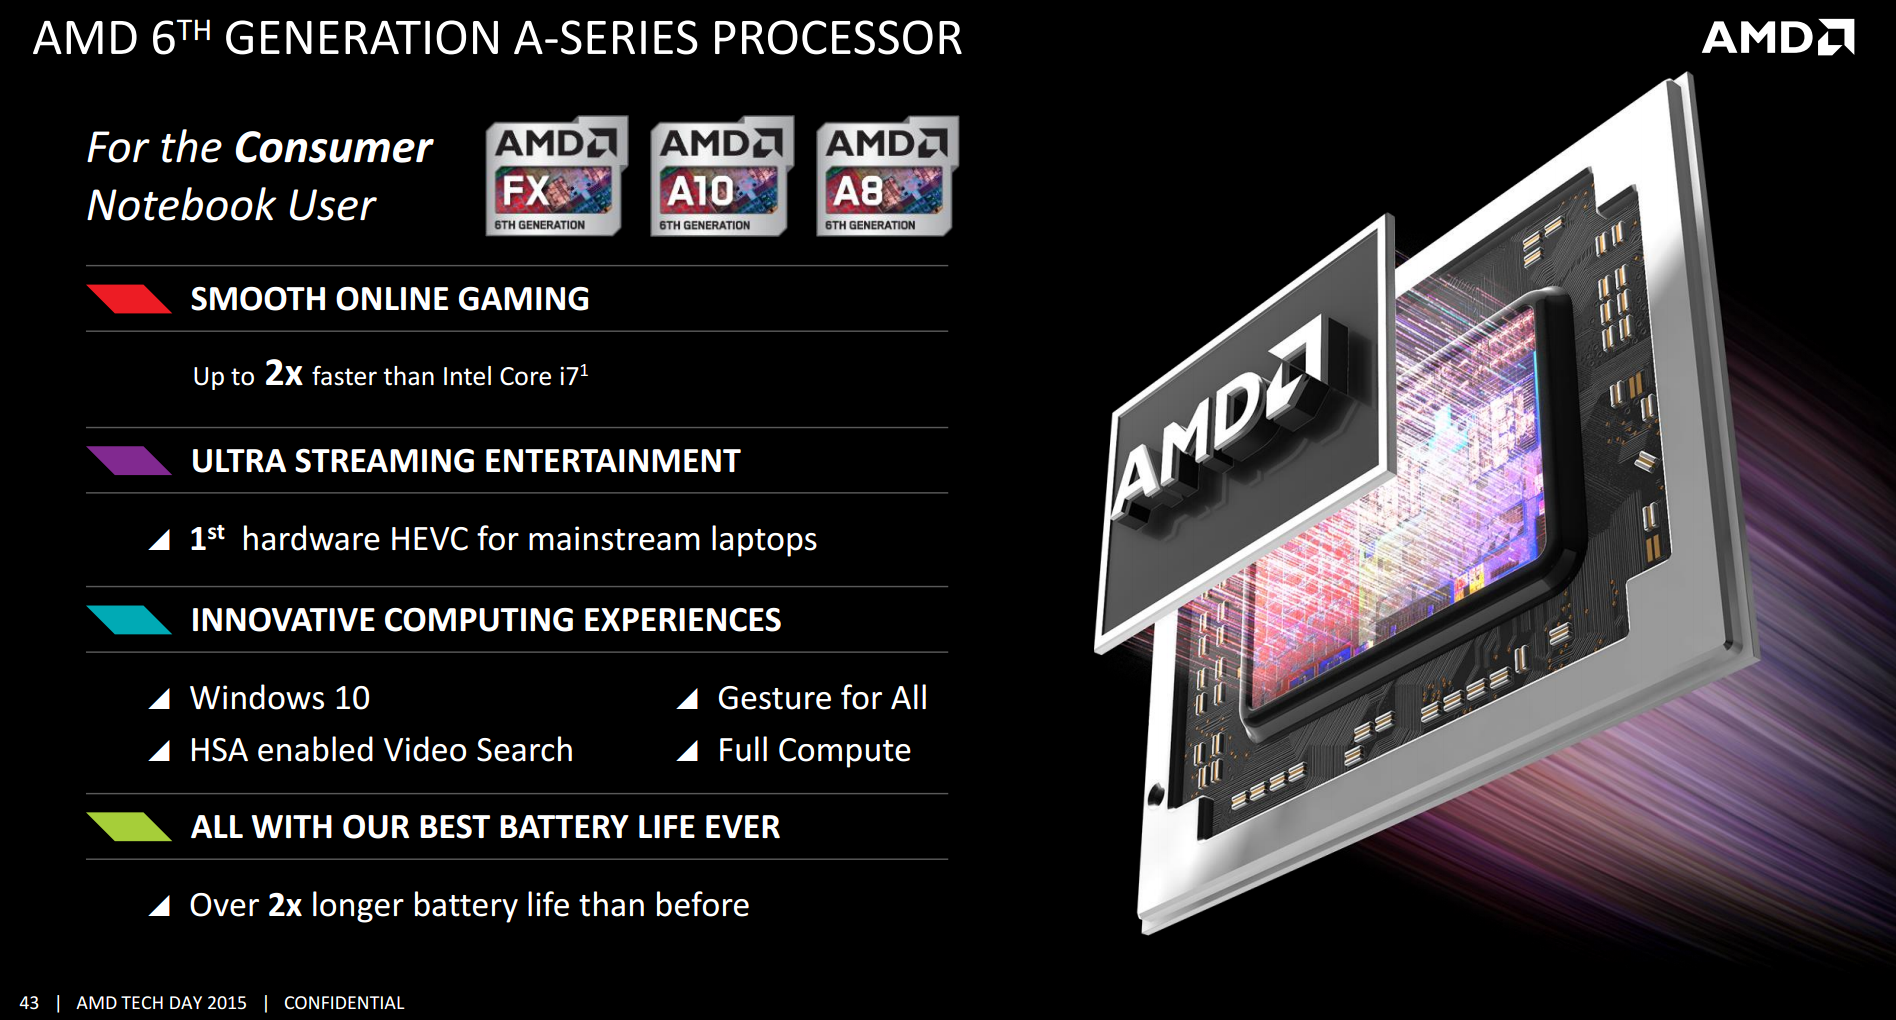 AMD Introduces Its Fastest PRO A-Series APUs Yet - Coming To